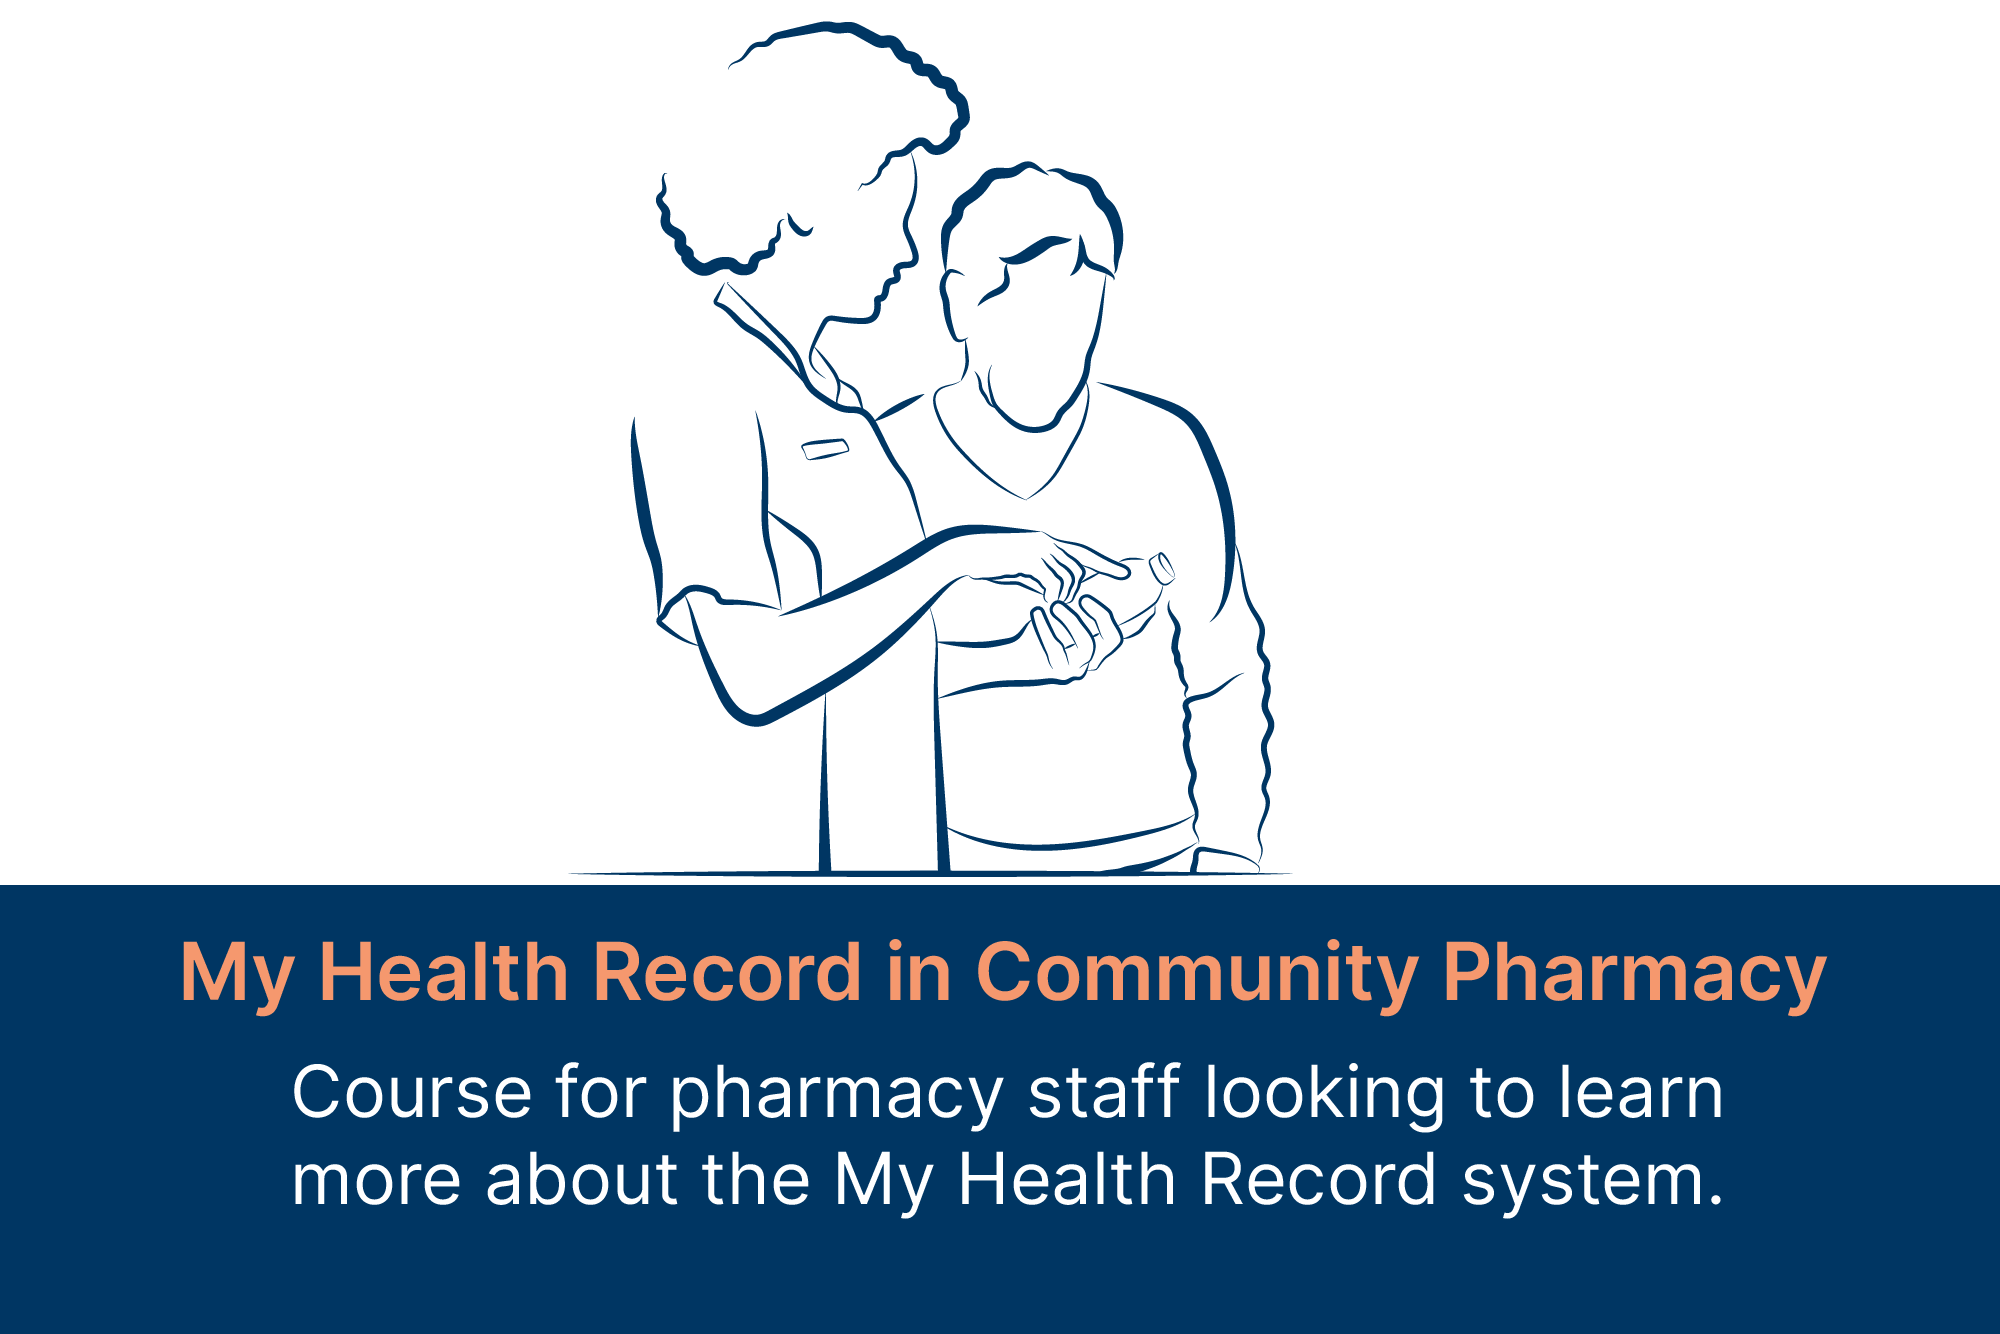 My health record in community pharmacy